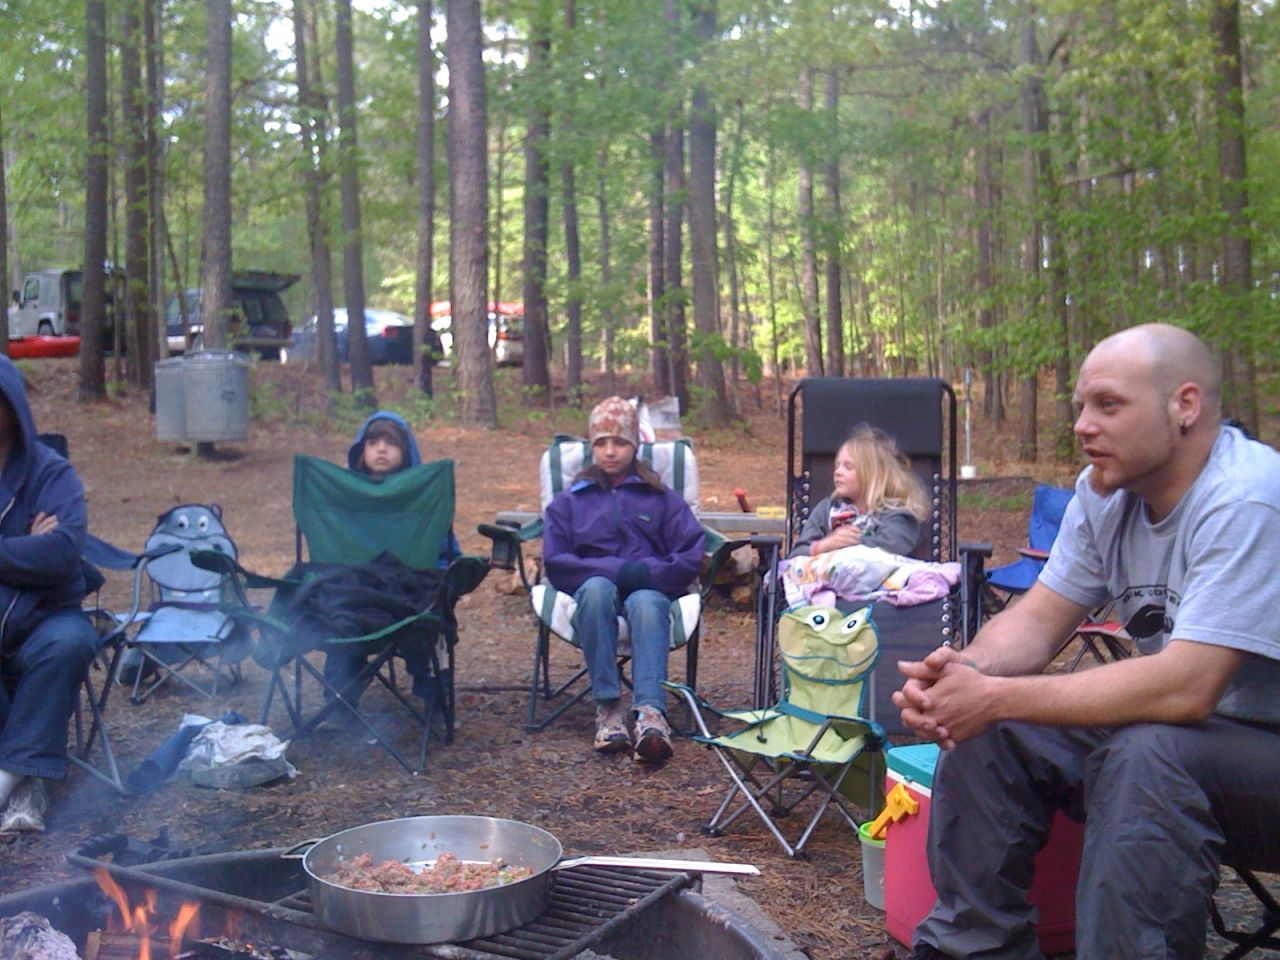 Nc>falls Lake> April 19-21, 2013 - 1st Annual Smoked Butt Hang